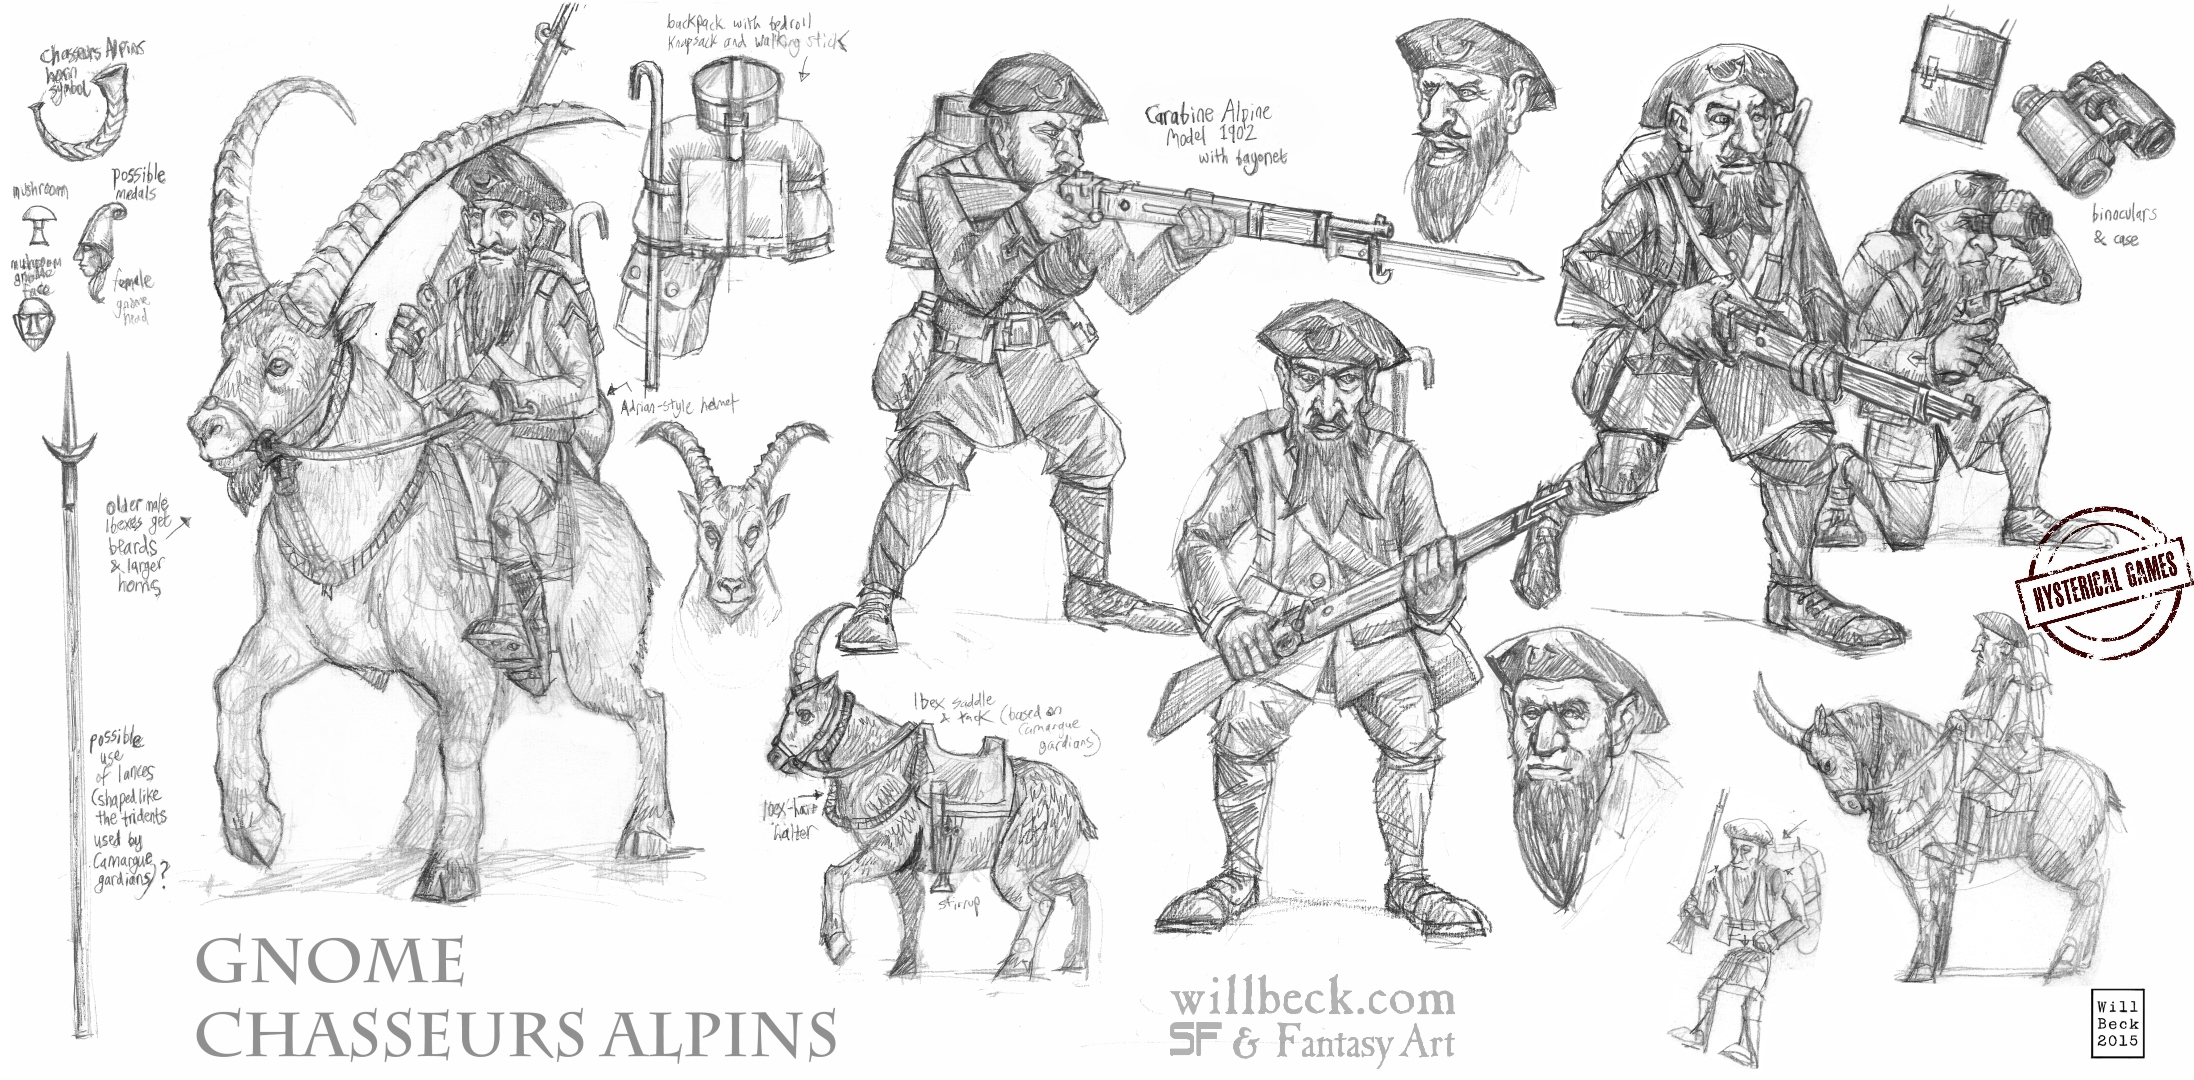 Gnome Chasseurs Alpins